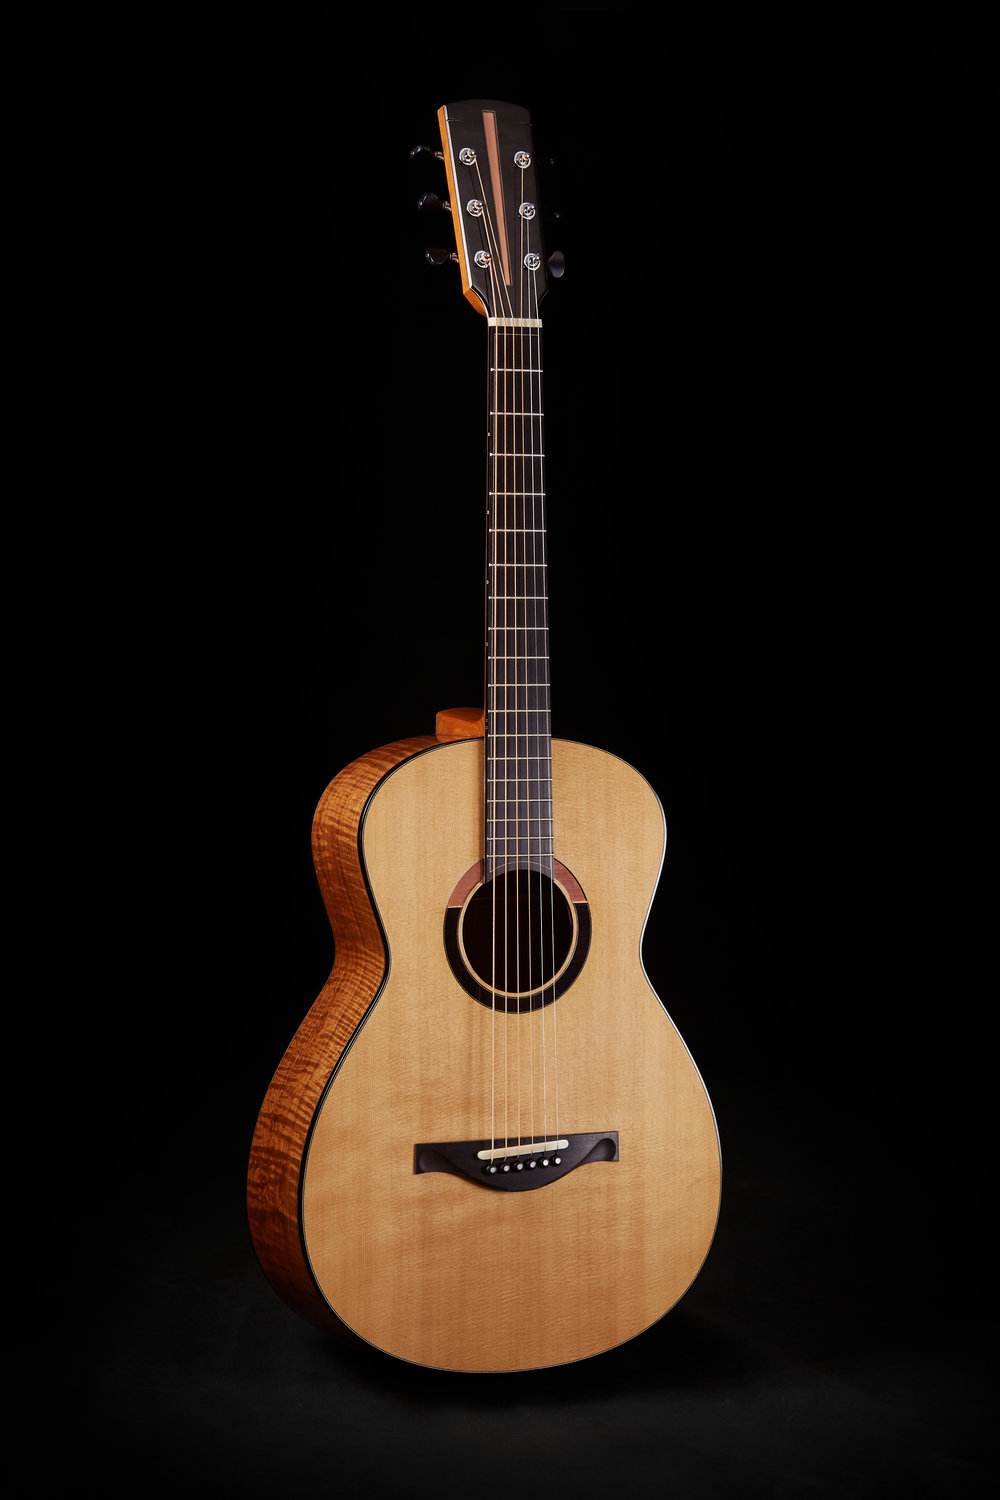 Peter's first Sands Guitar - 00 in Reclaimed Railroad Sitka Spruce and T'Zalam